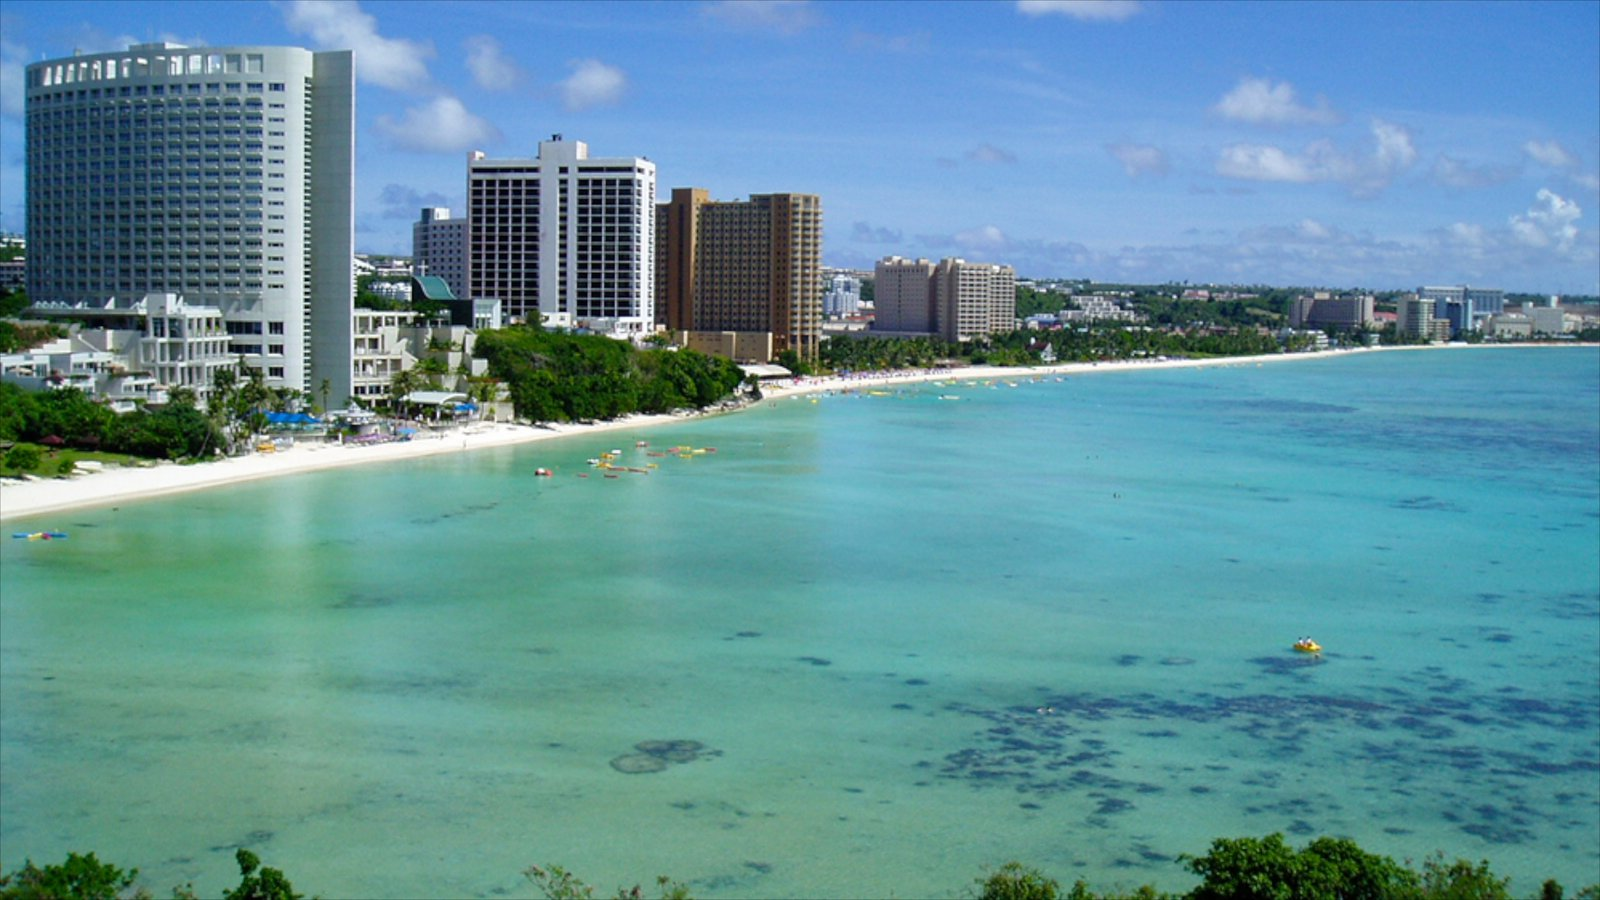 Tumon Beach Which Includes Tropical Scenes A Luxury Hotel Or Resort And General Coastal Views